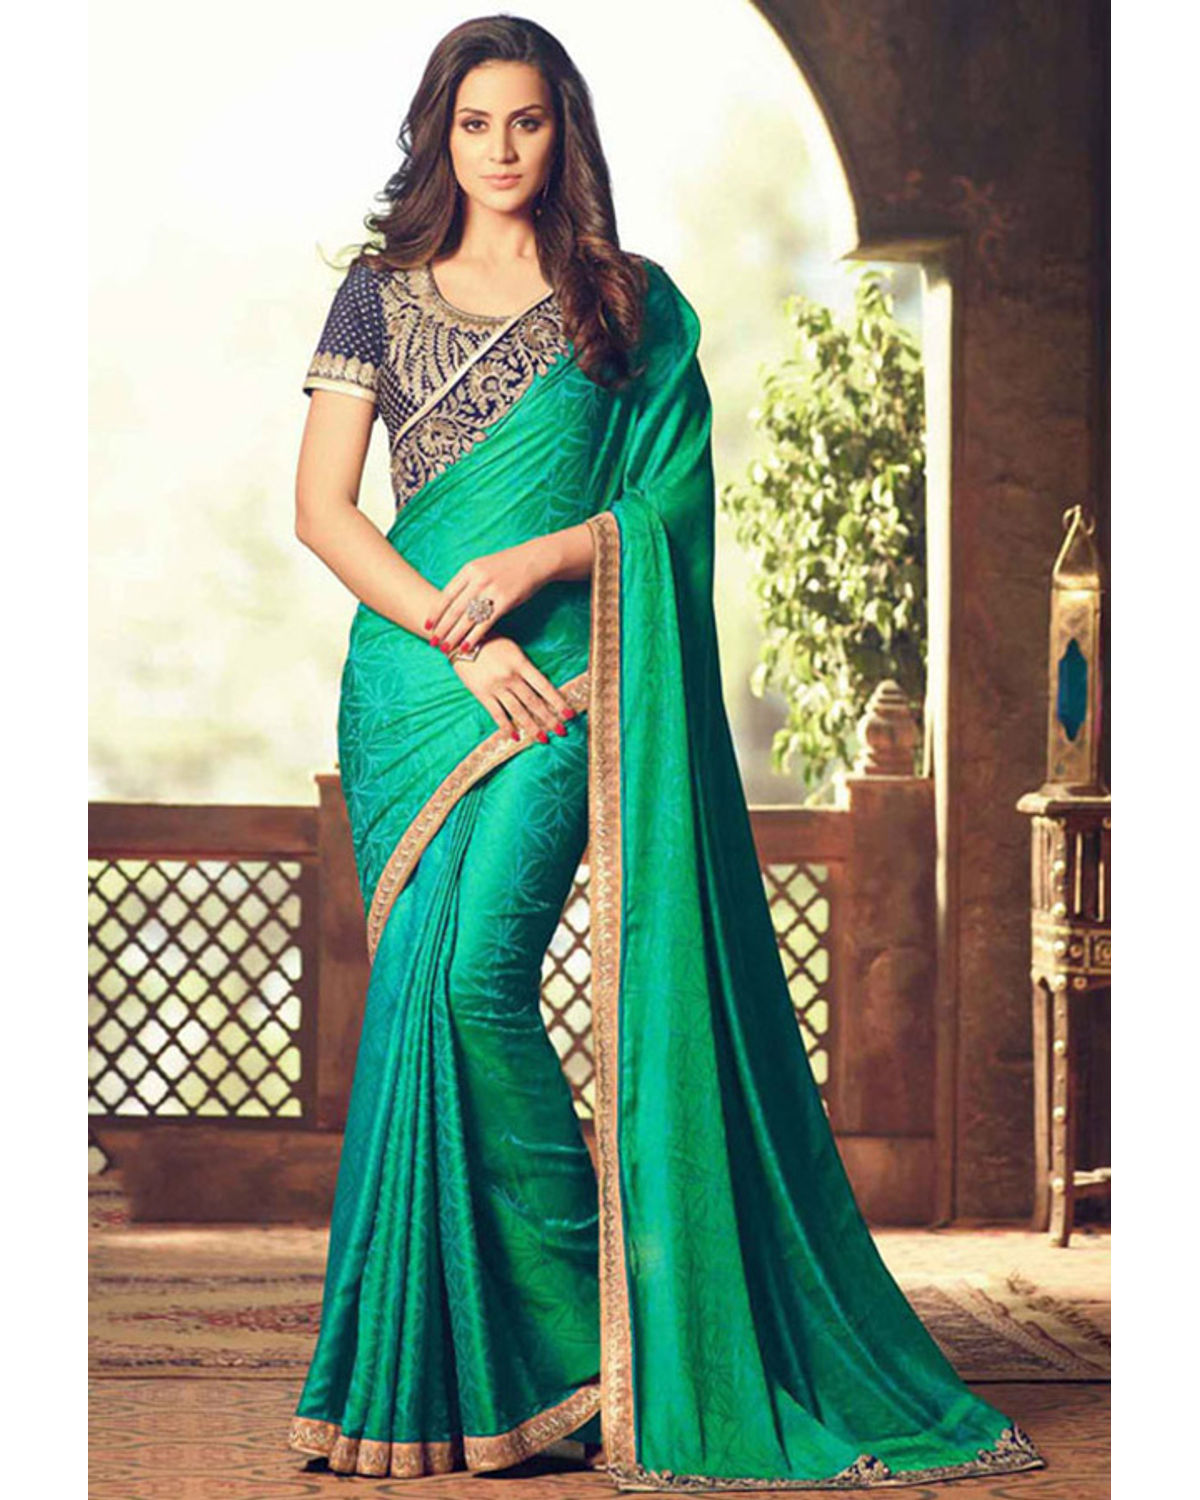 Party Wear Saree In Green Color With Designer Blouse | Deesps19003